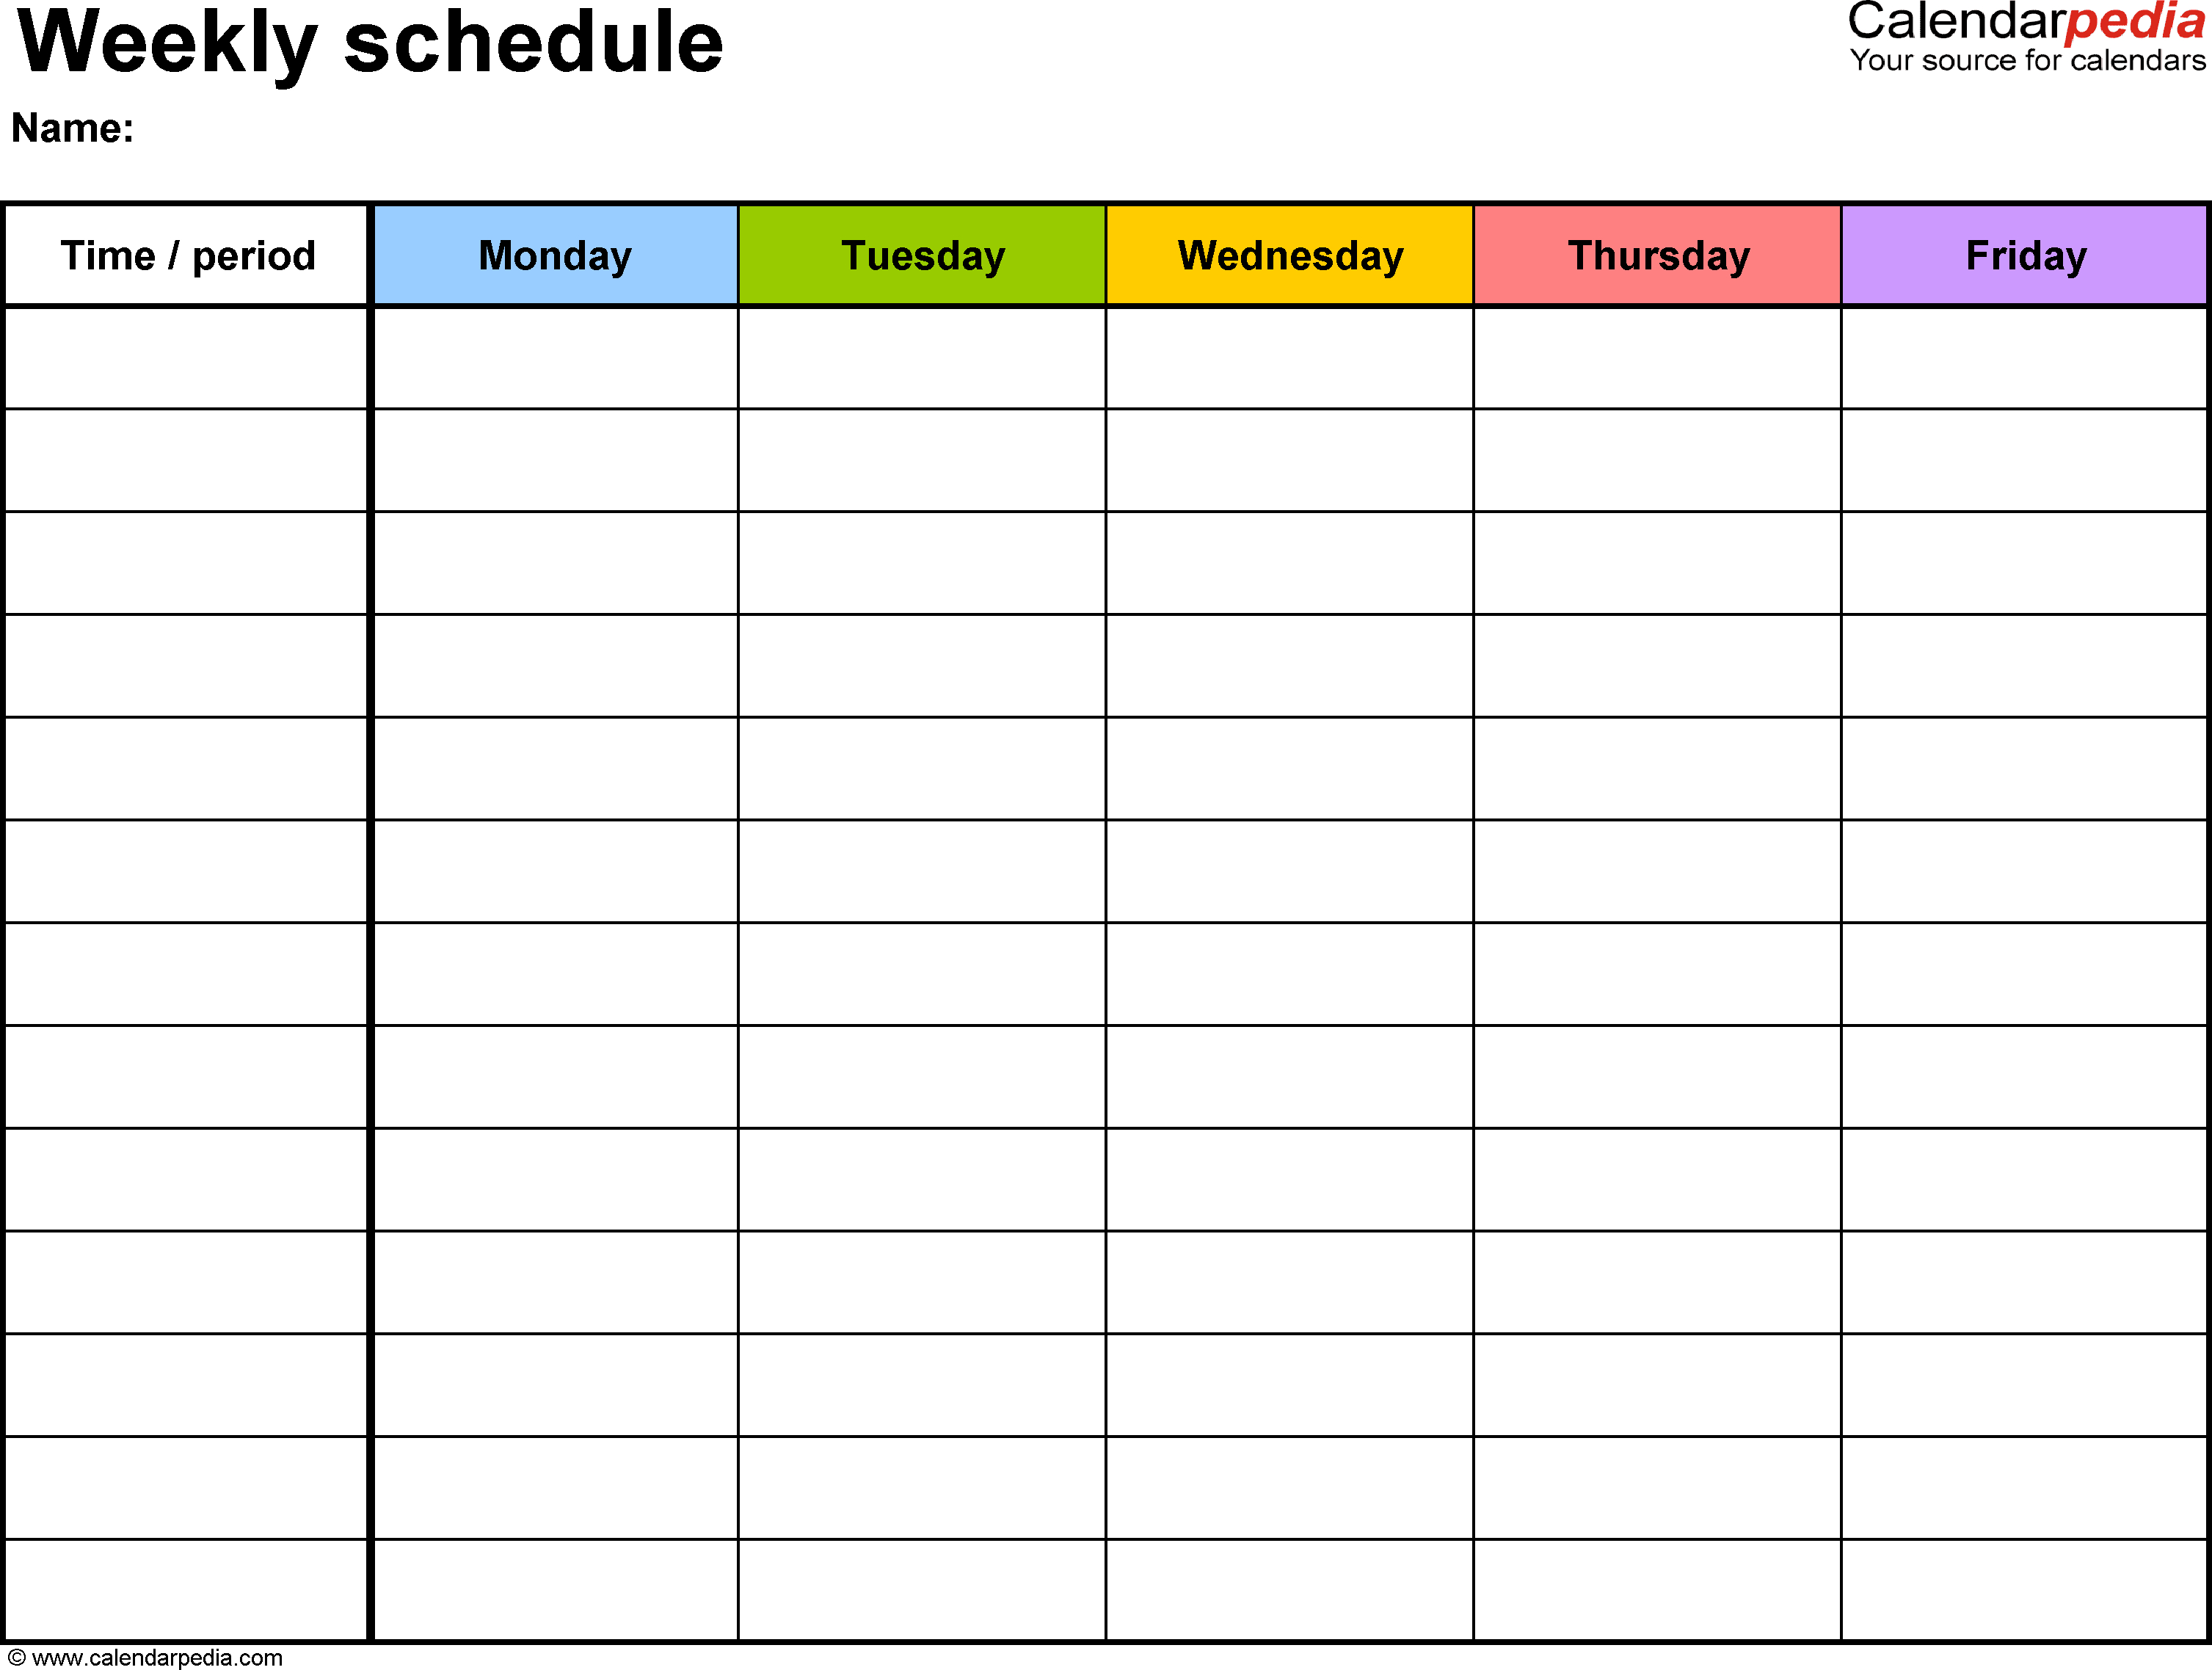 Free Weekly Schedule Templates For Word - 18 Templates in Monday Through Friday Schedule Template